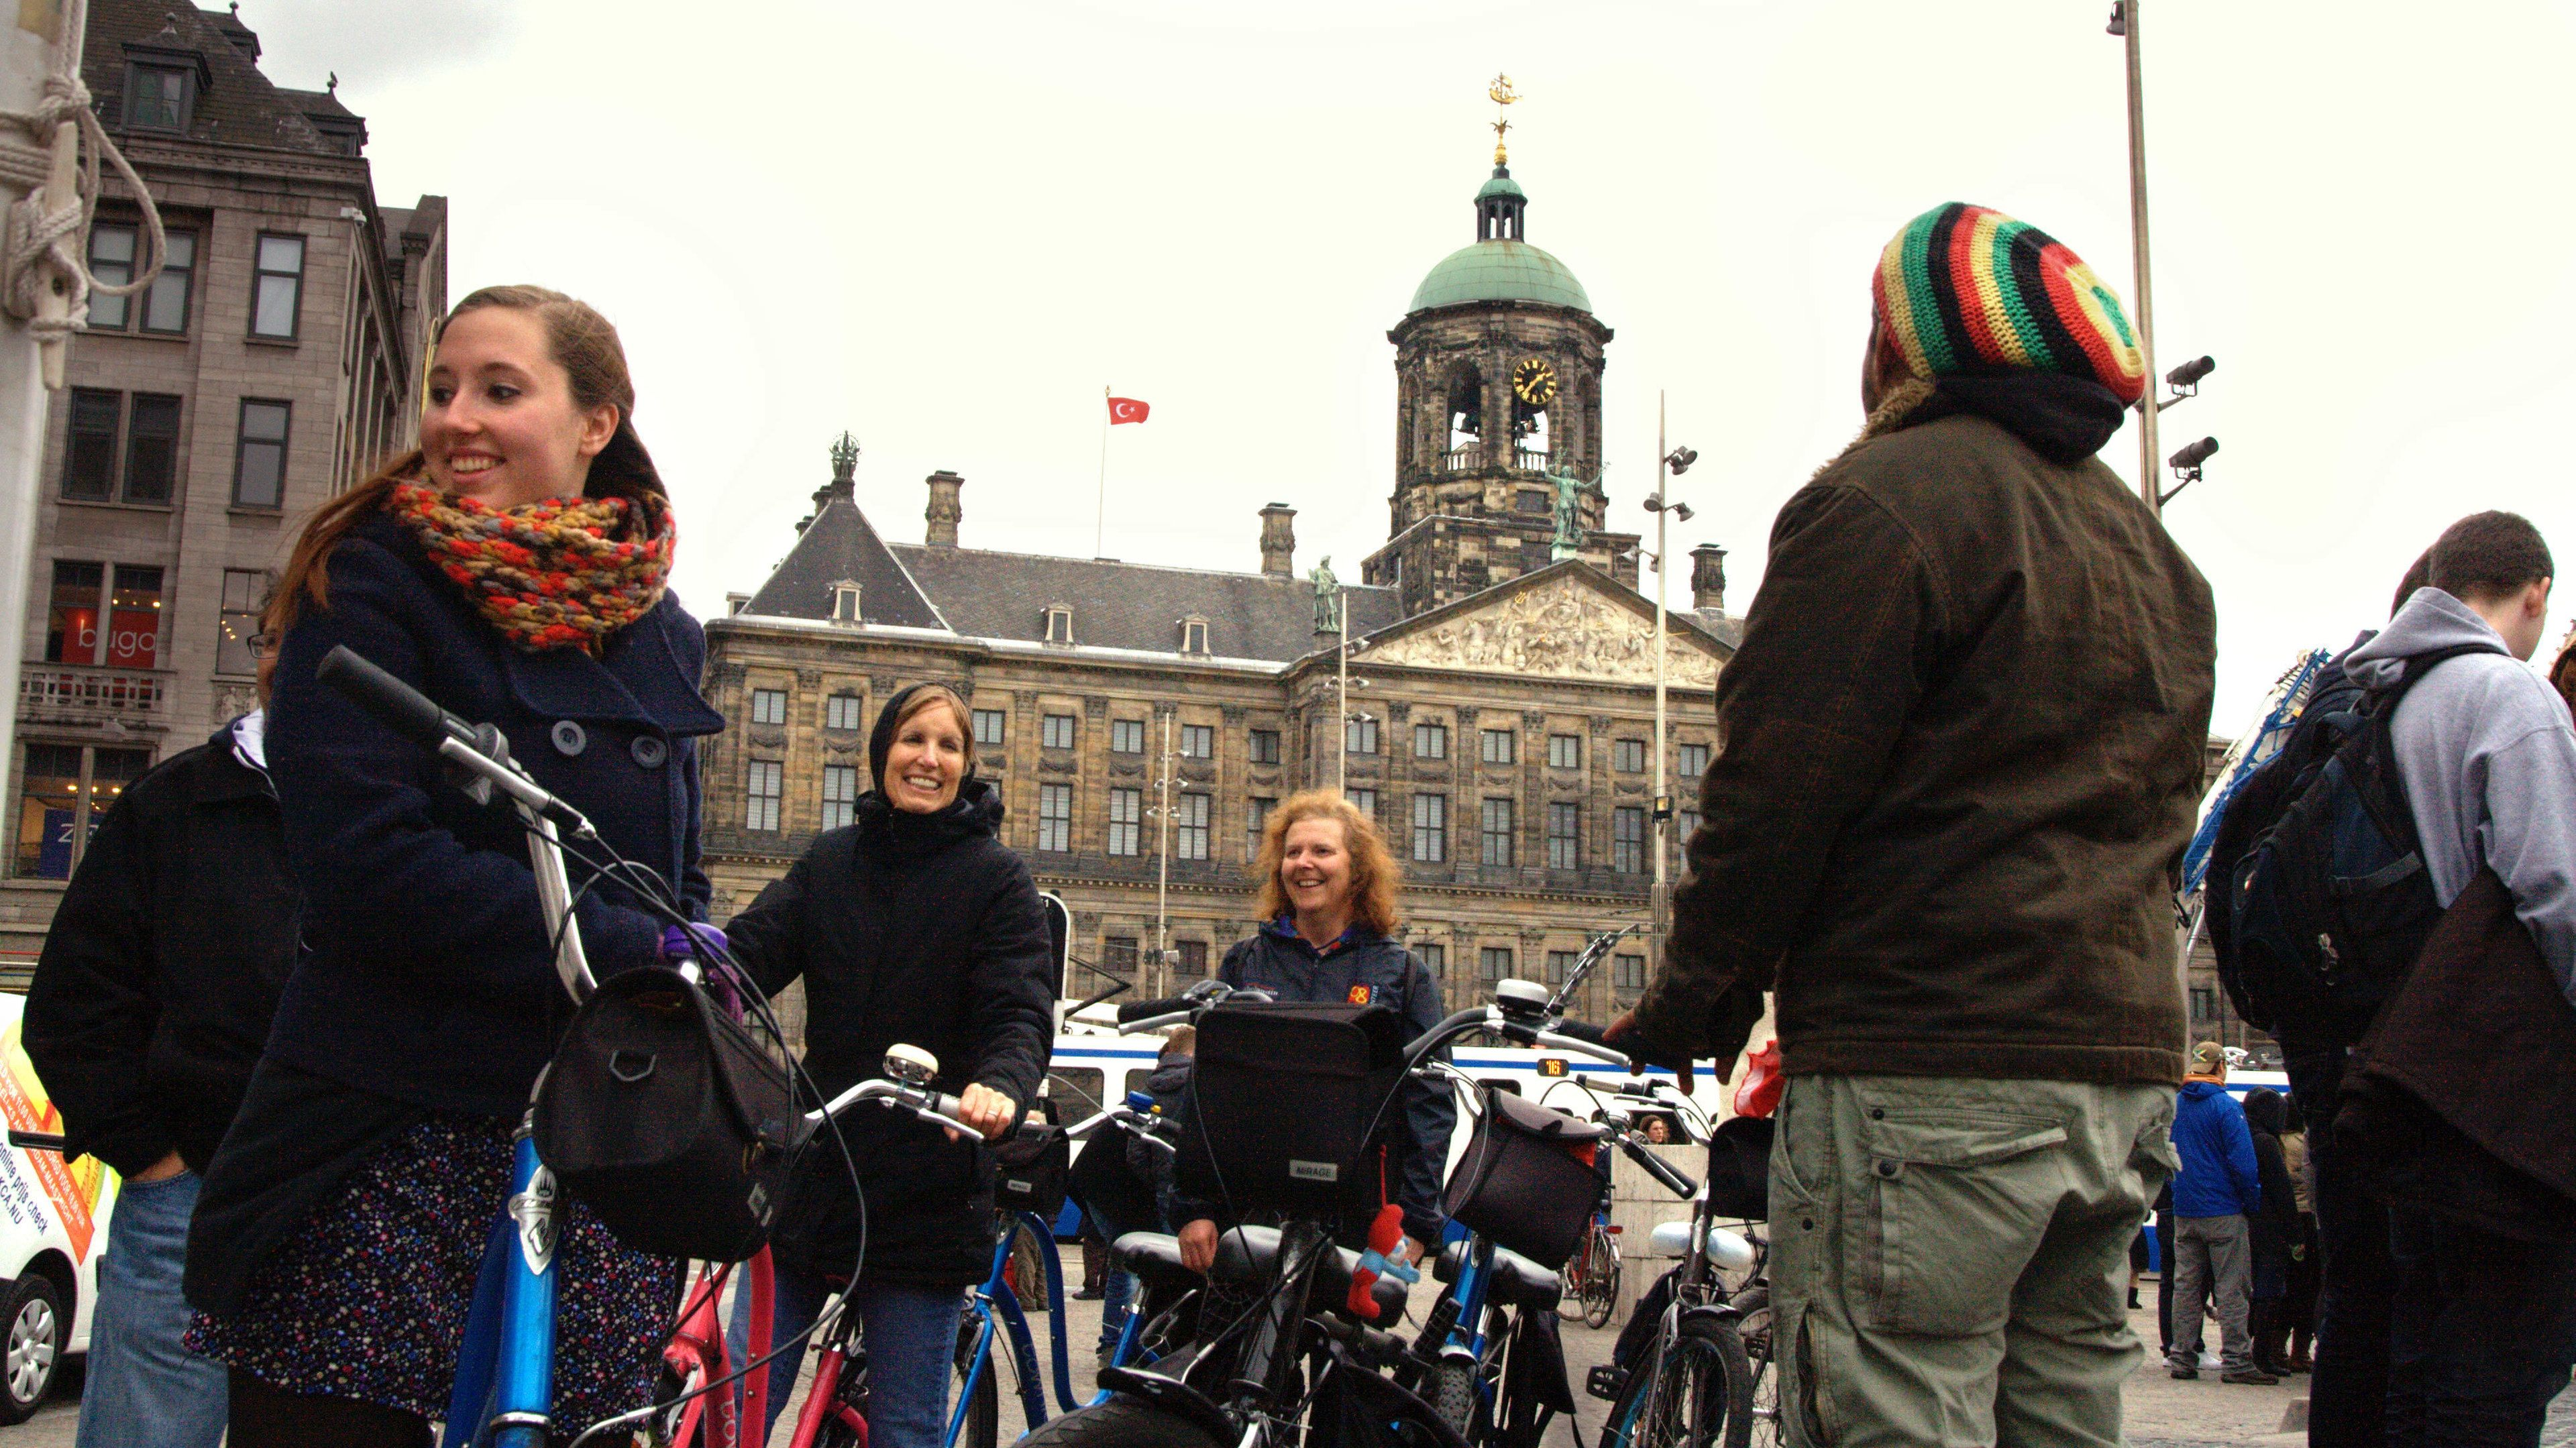 Bicycling Tour group in Amsterdam